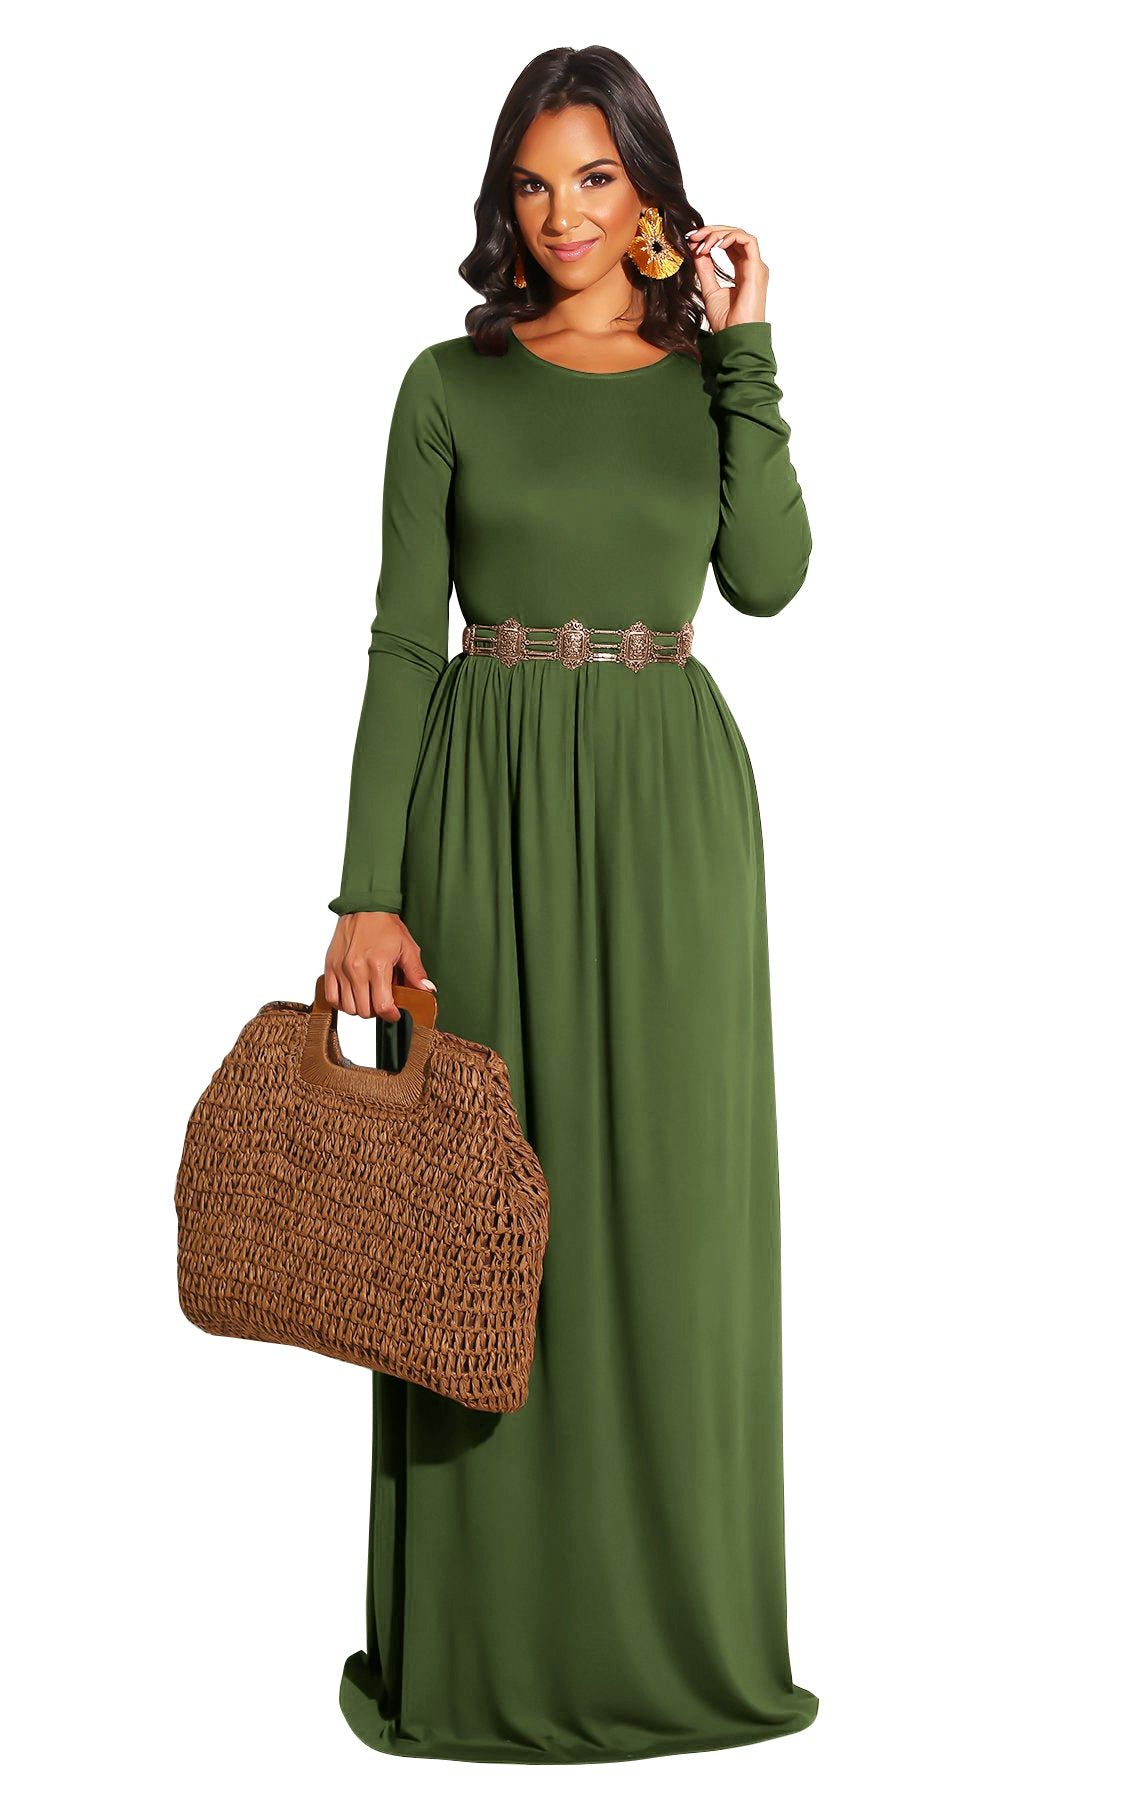 Army Green Long Sleeve O-Neck Casual Maxi Dress( Not including the waistband)